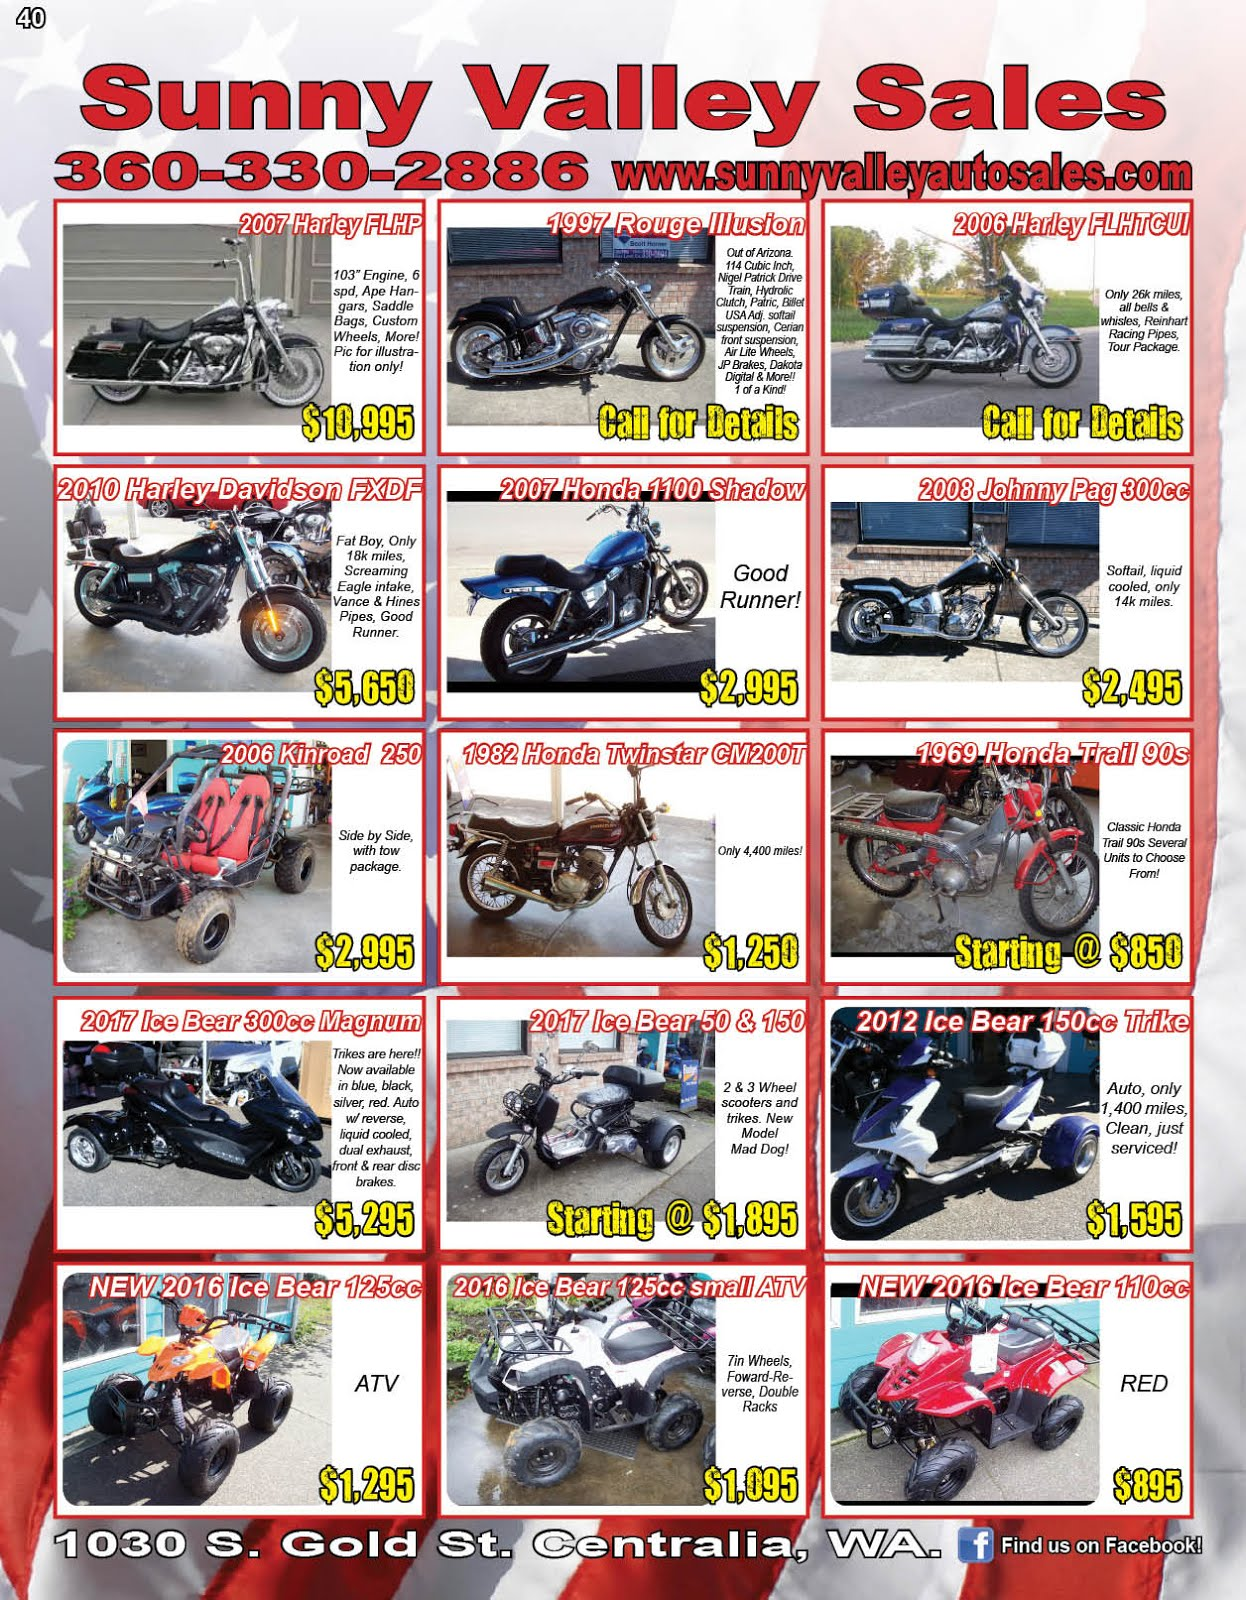 Sunny Valley Sales Motorcycles, ATVs, Scooters